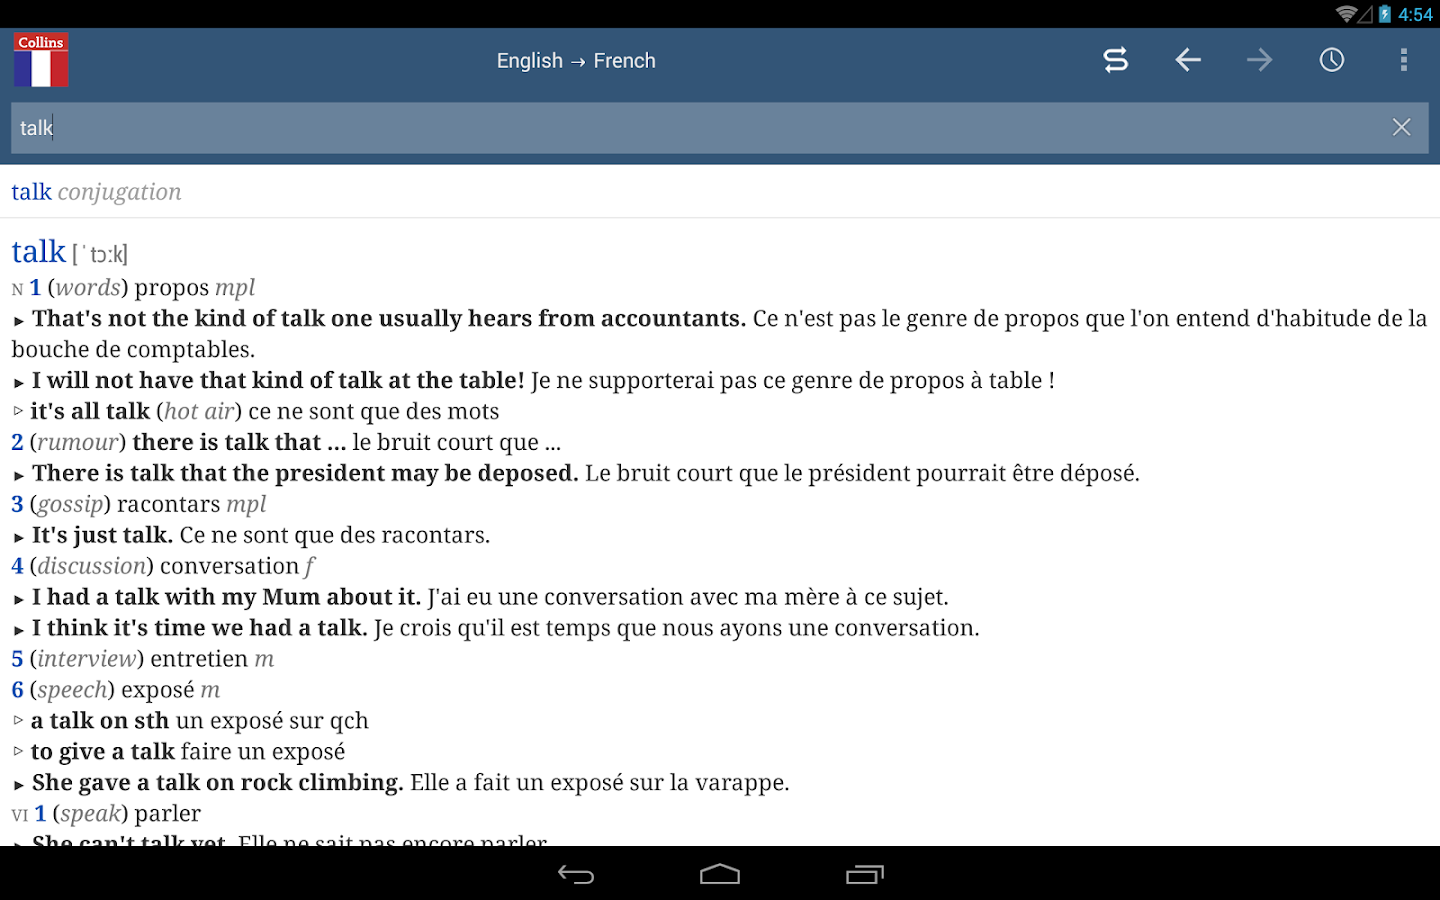 Bedroom english french dictionary wordreference com - Collins French Dictionary Screenshot